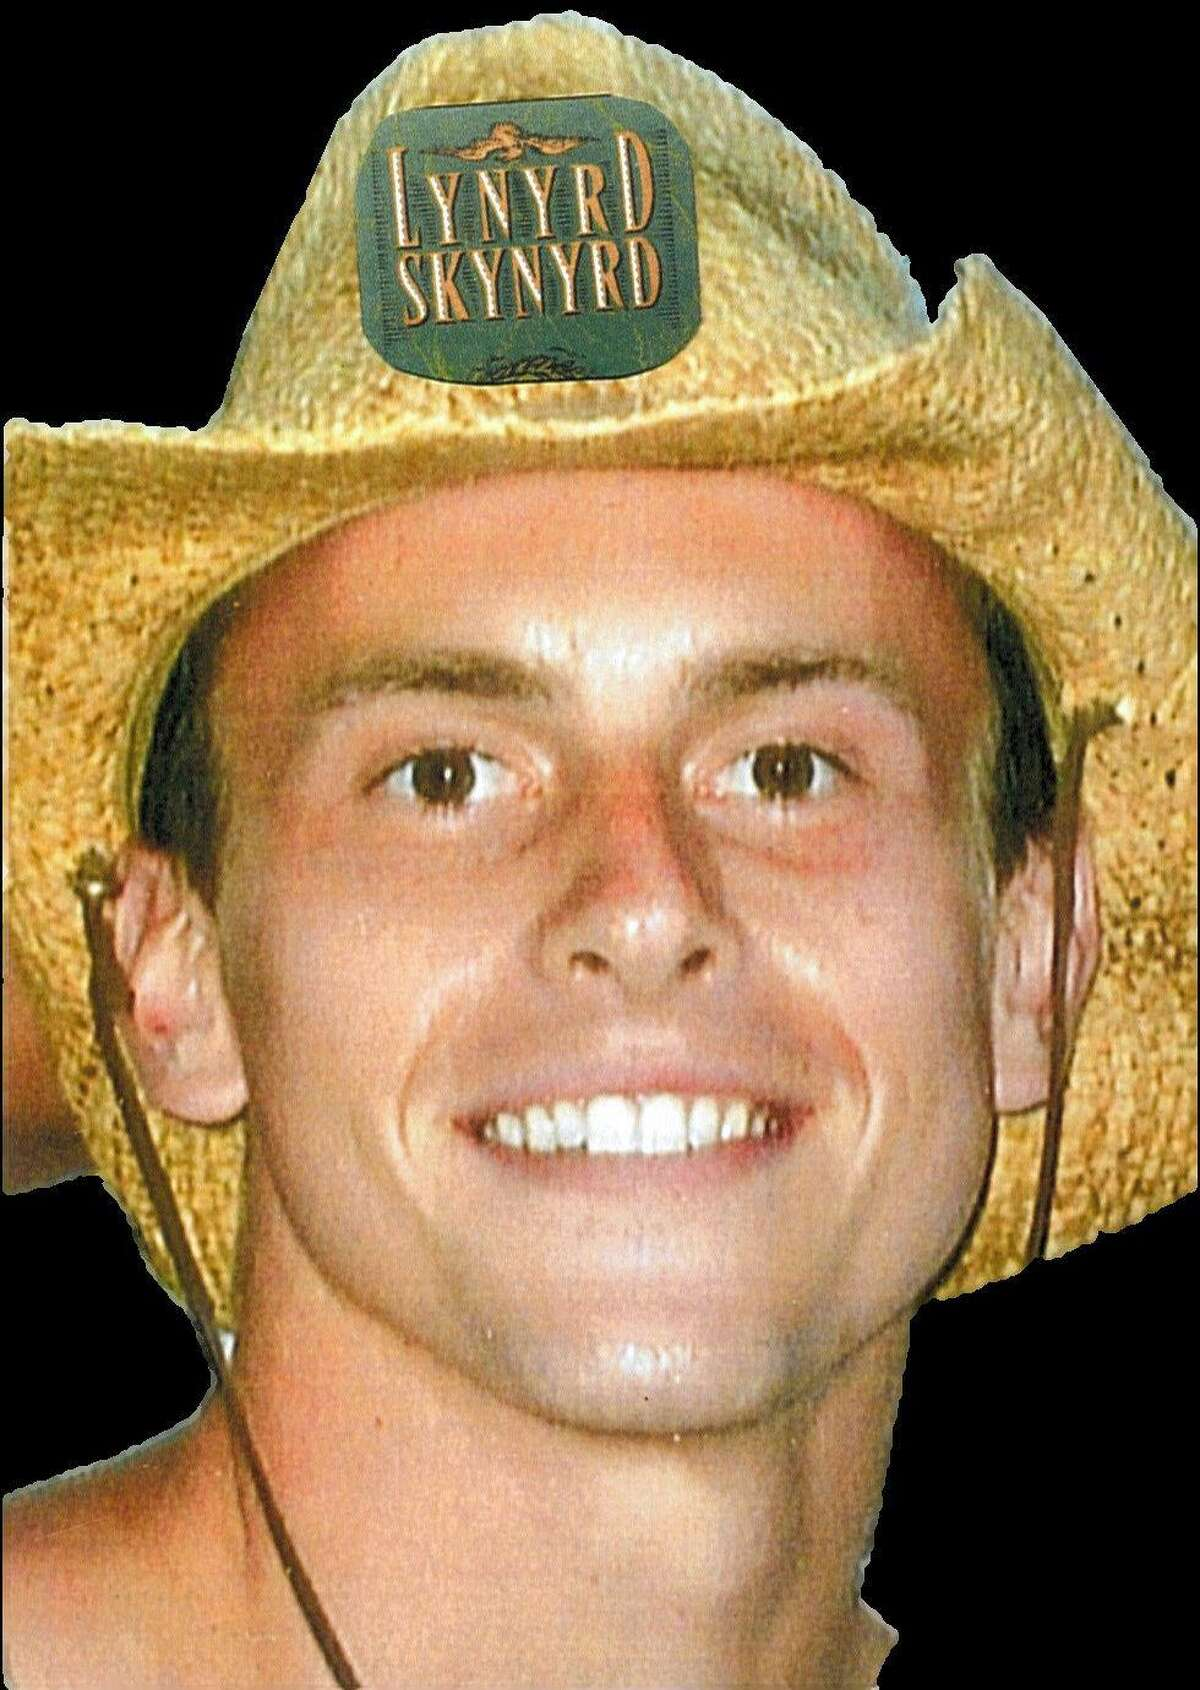 Christopher Hubinger, 22, of Seymour, Conn., was killed in an drunk driving accident on Dec. 22, 2007. Fairfield County's Walk like MADD event will be held in his memory on Saturday, Sept. 16, 2017, in Fairfield as the 10-year anniversary of his death approaches.